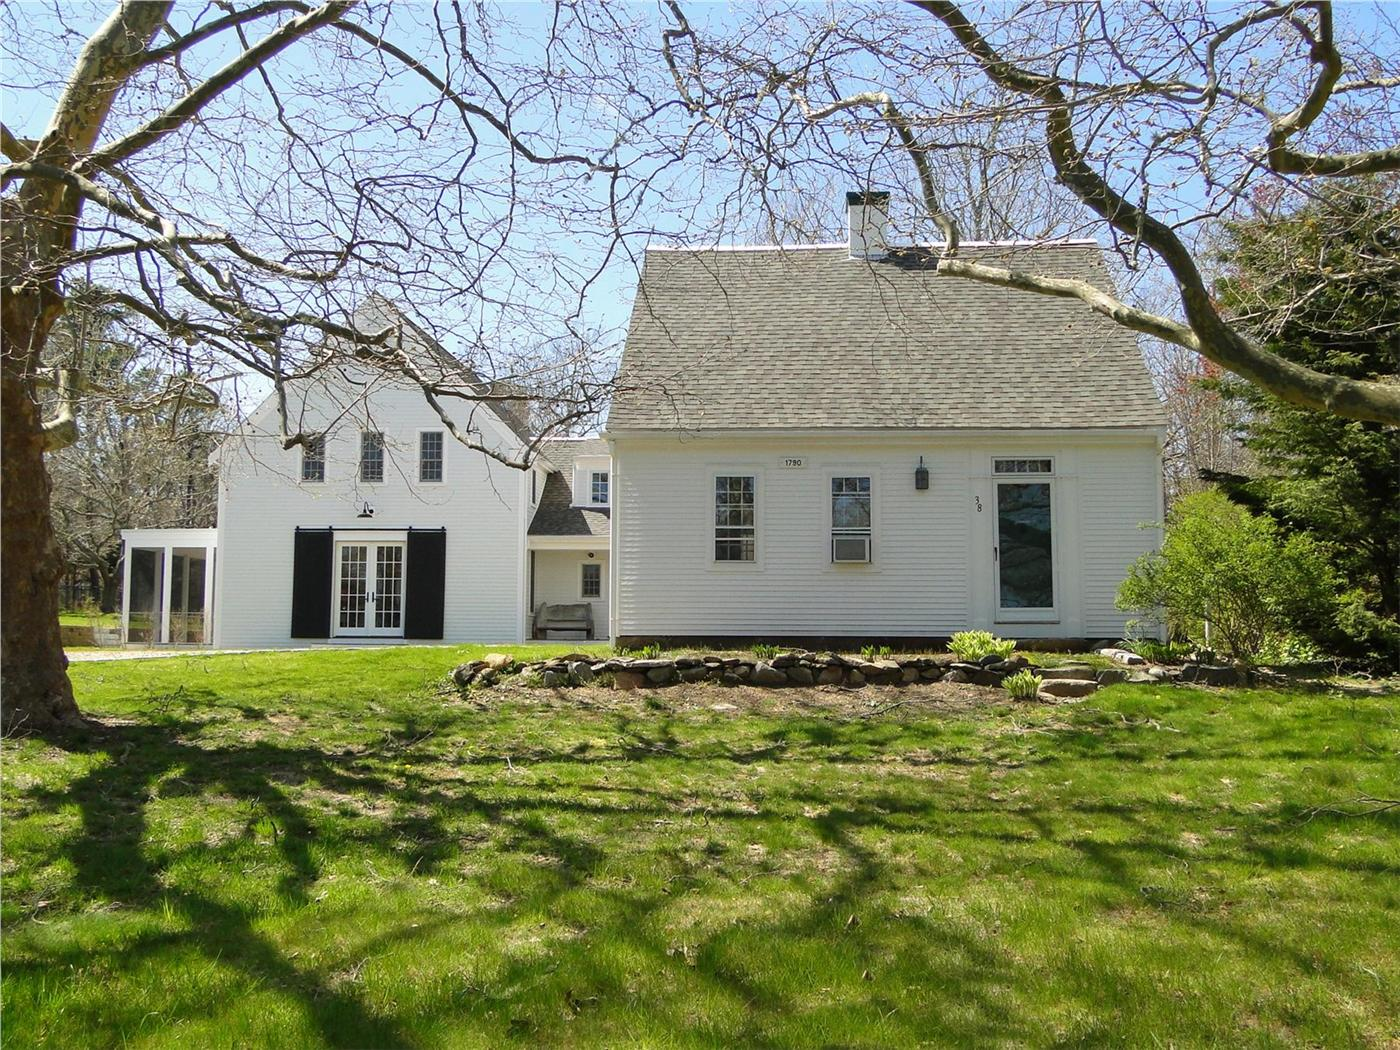 Dennis Vacation Rental Home In Cape Cod Ma 02638 Id 24961